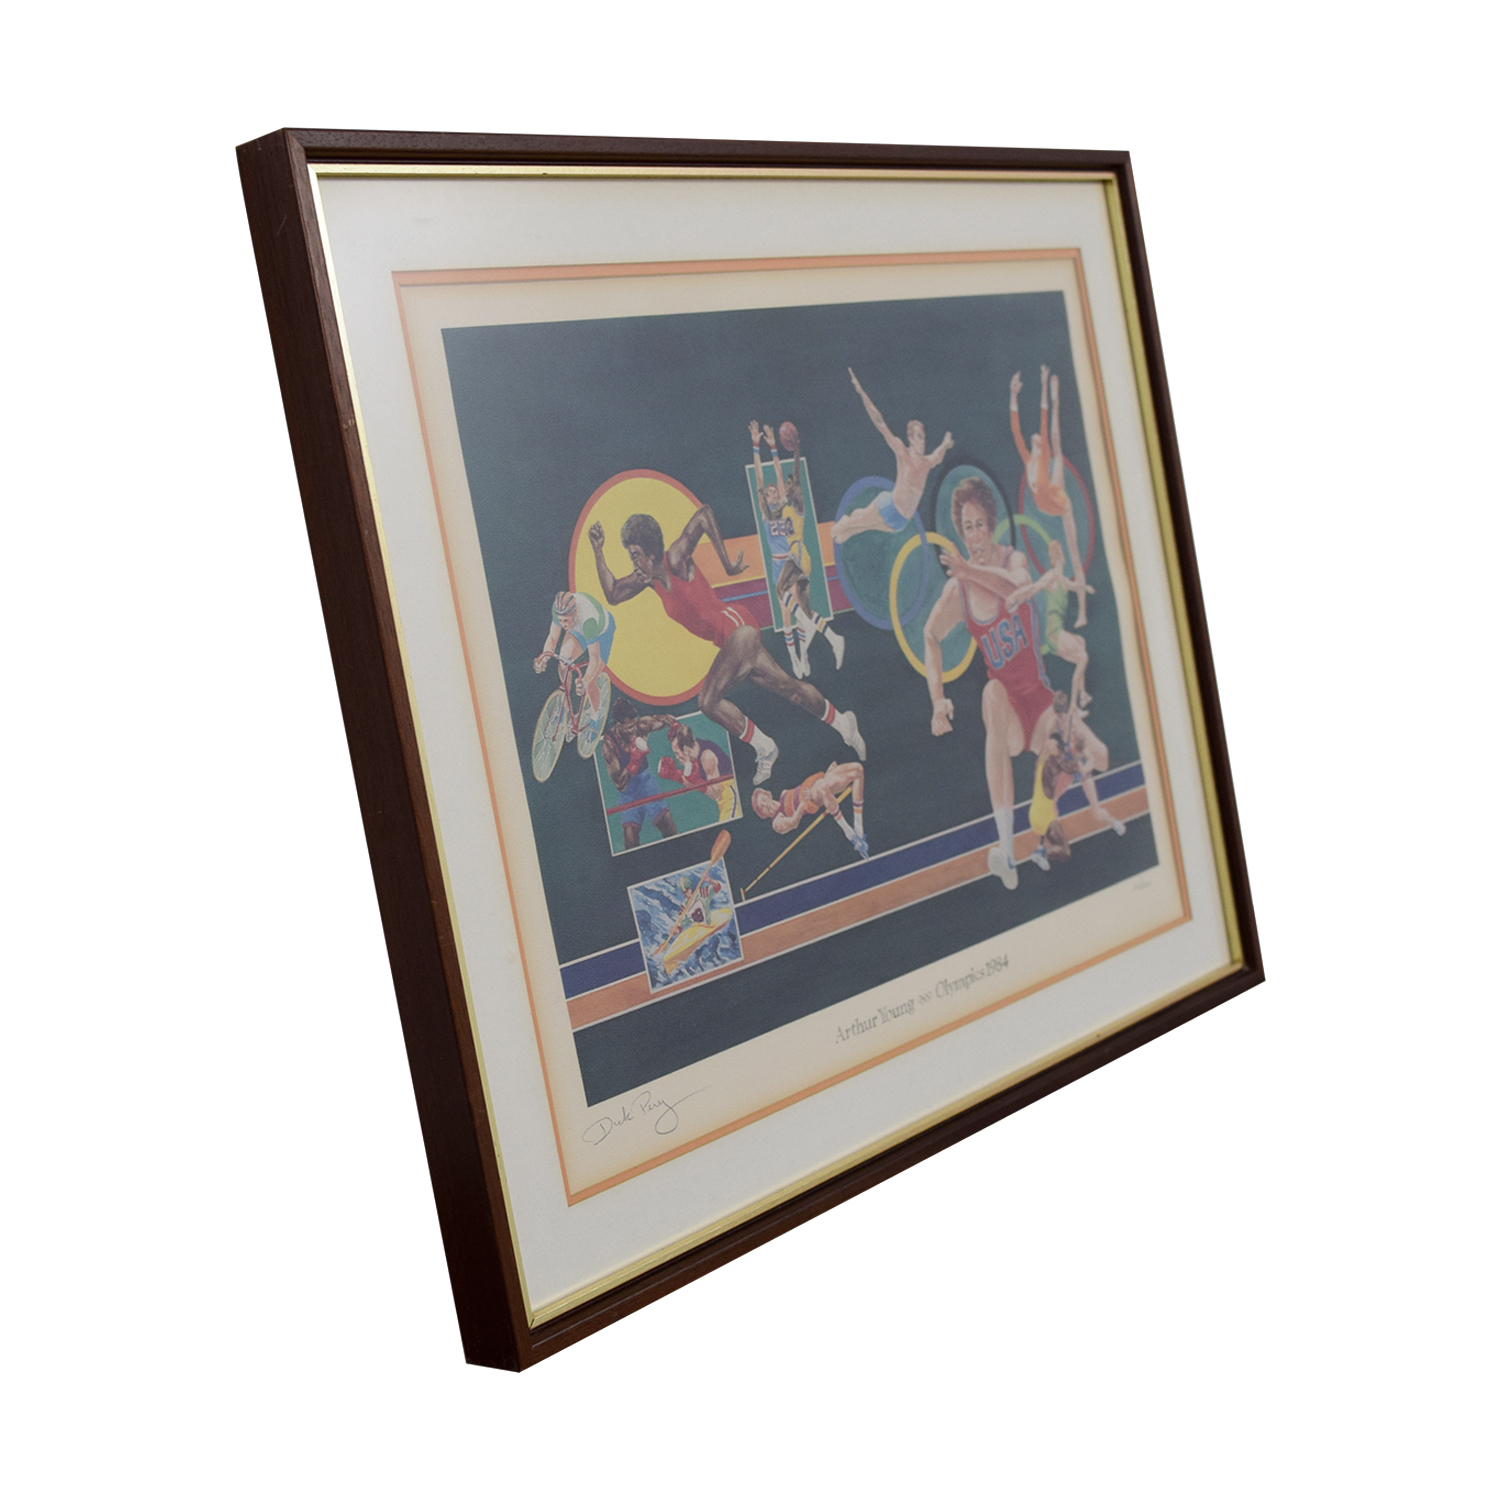 buy Caitlyn Jenner Dick Pery Signed 1984 Olympic Art Dick Pery Decor